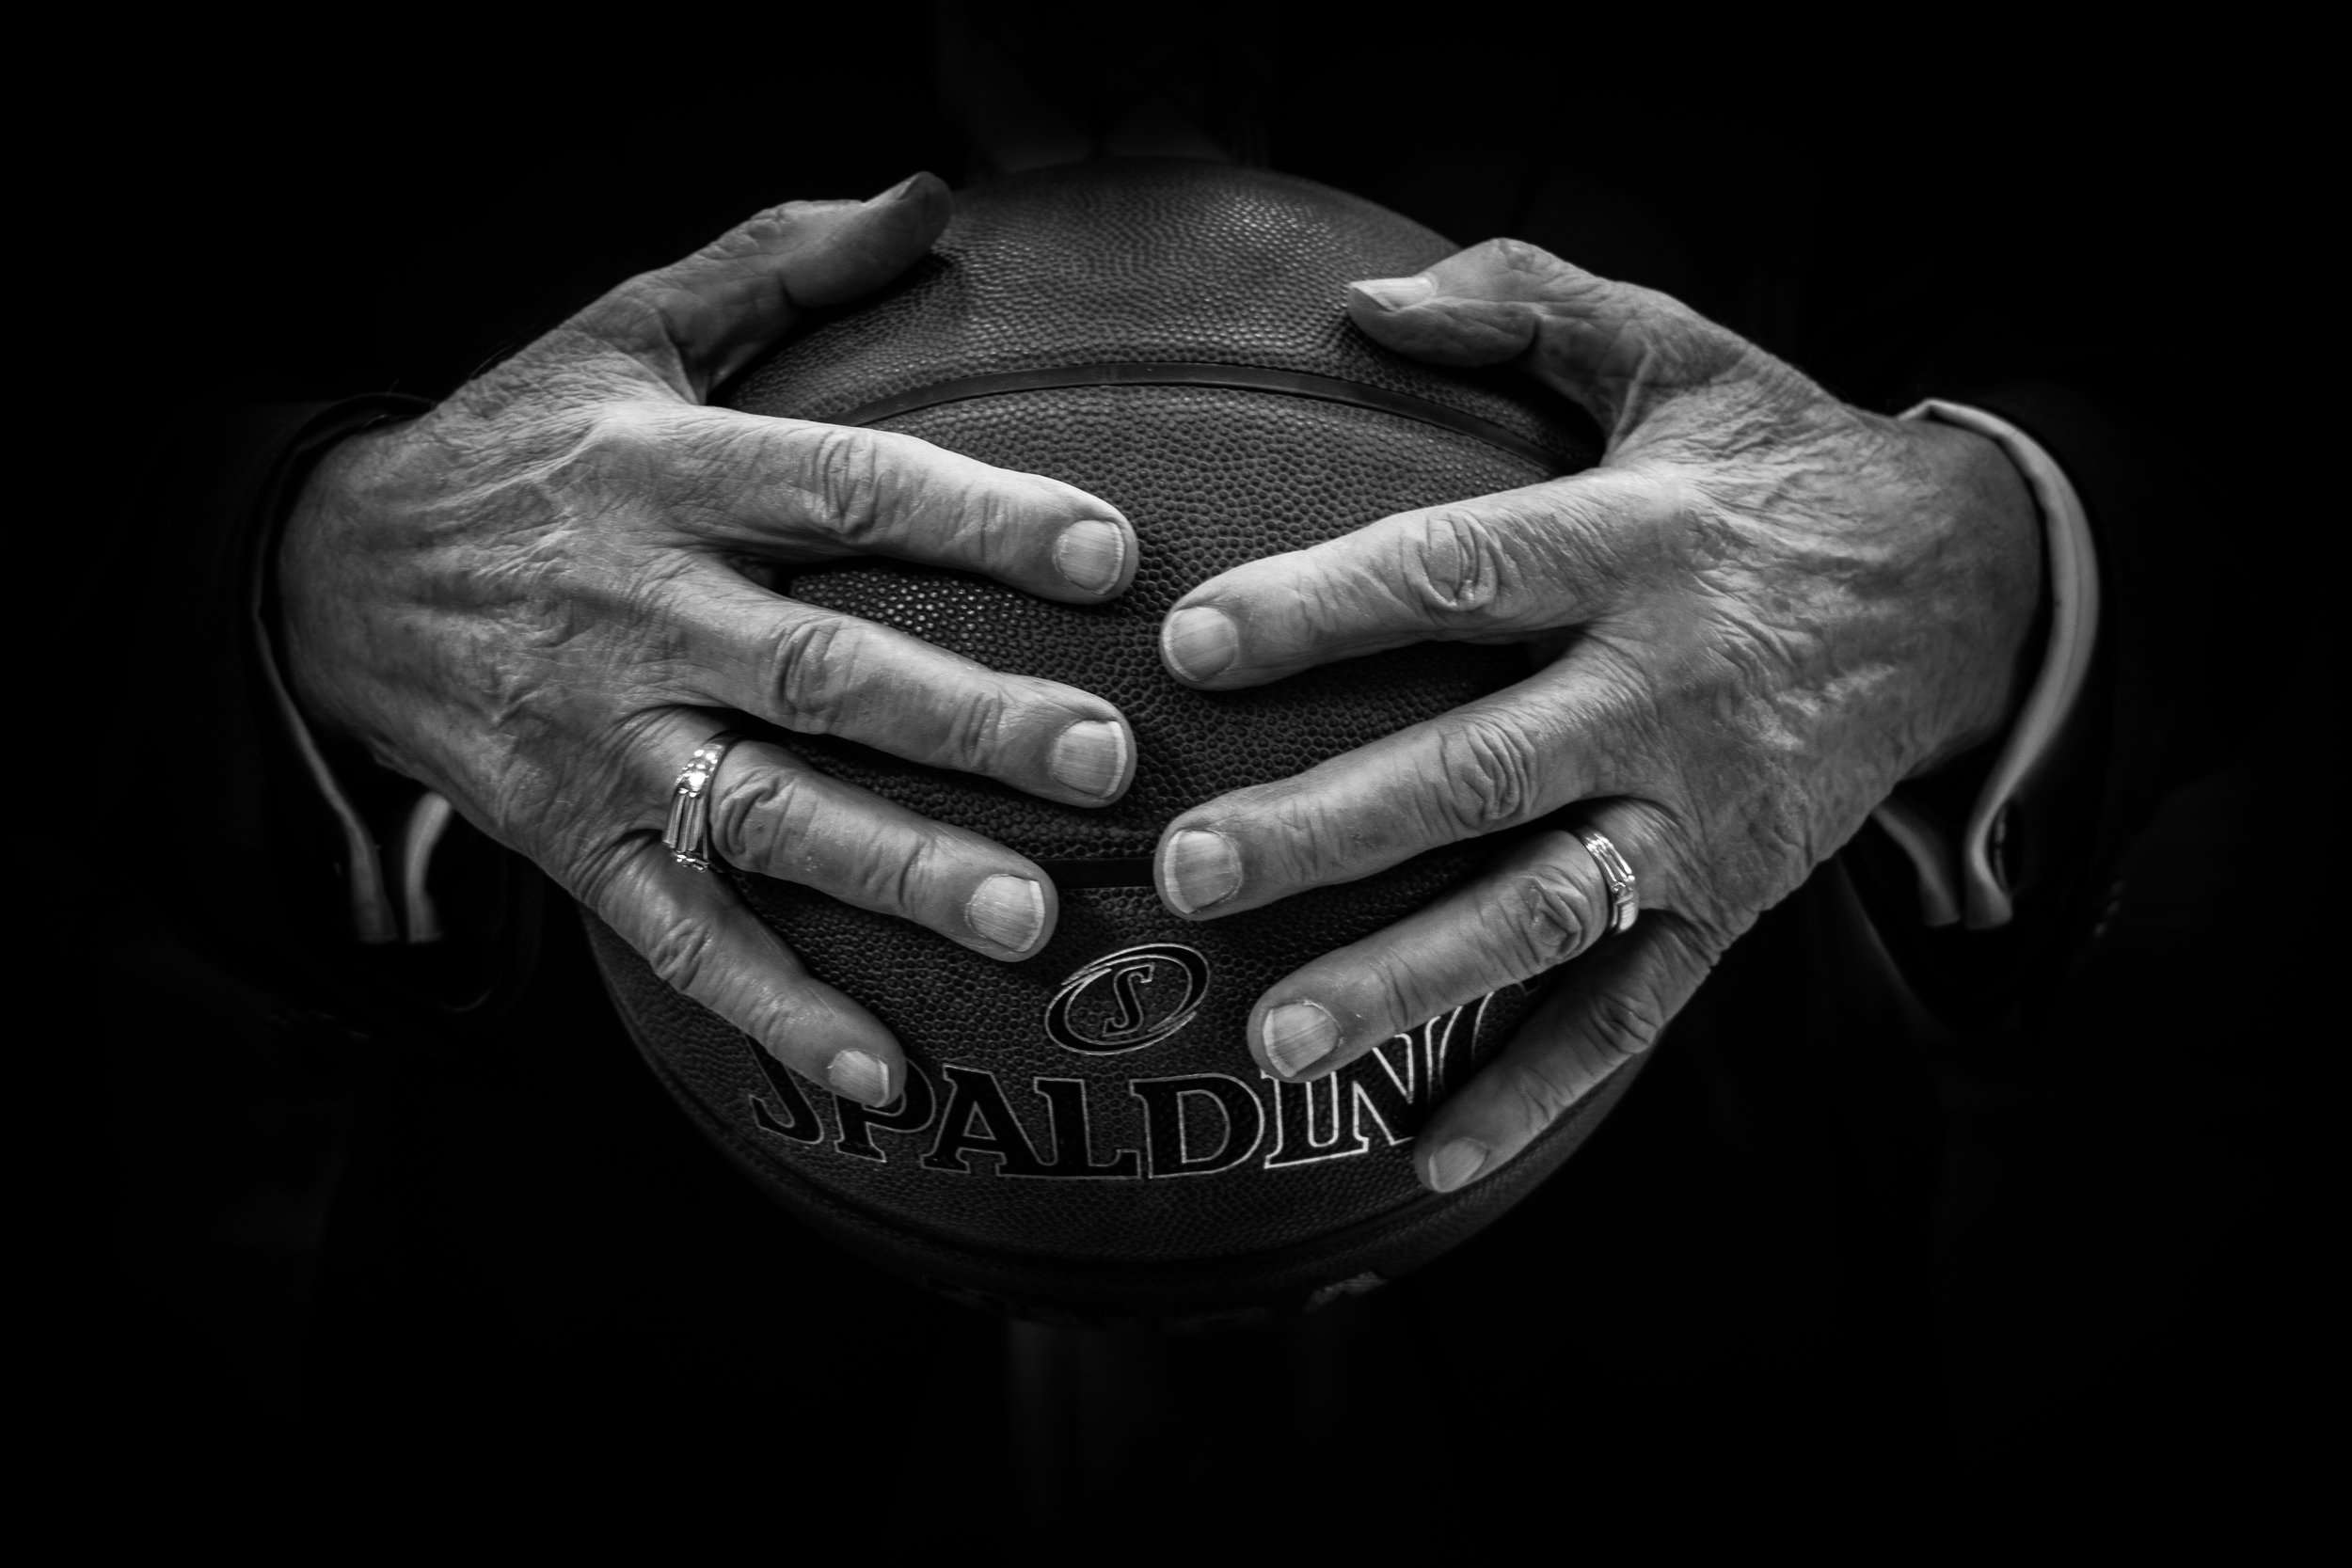 https://unsplash.com/search/basketball?photo=coeiB8klMaE